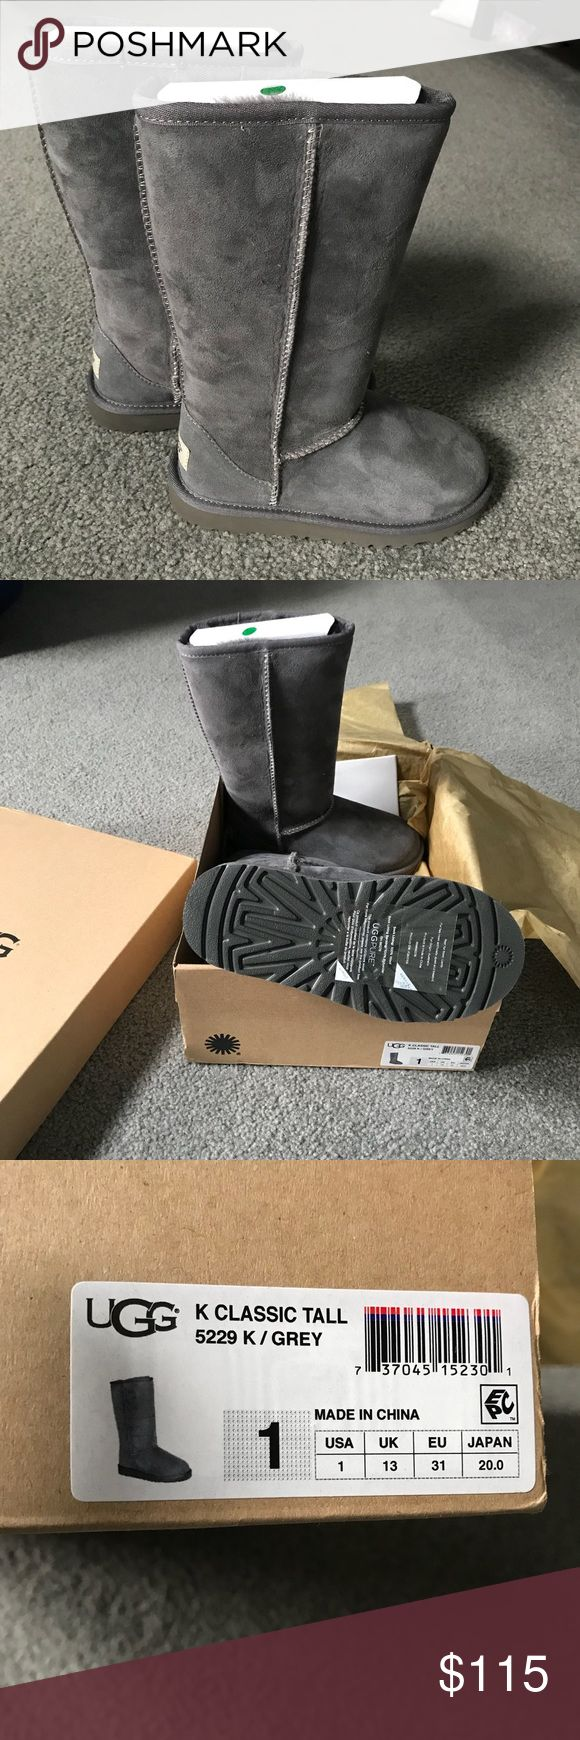 BNIB ❄️ girls UGG boots grey classic tall BNIB ❄️ authentic girls UGG grey classic tall boots sz 1. Never worn...(my daughter didn't want them 😩) UGG Shoes Boots